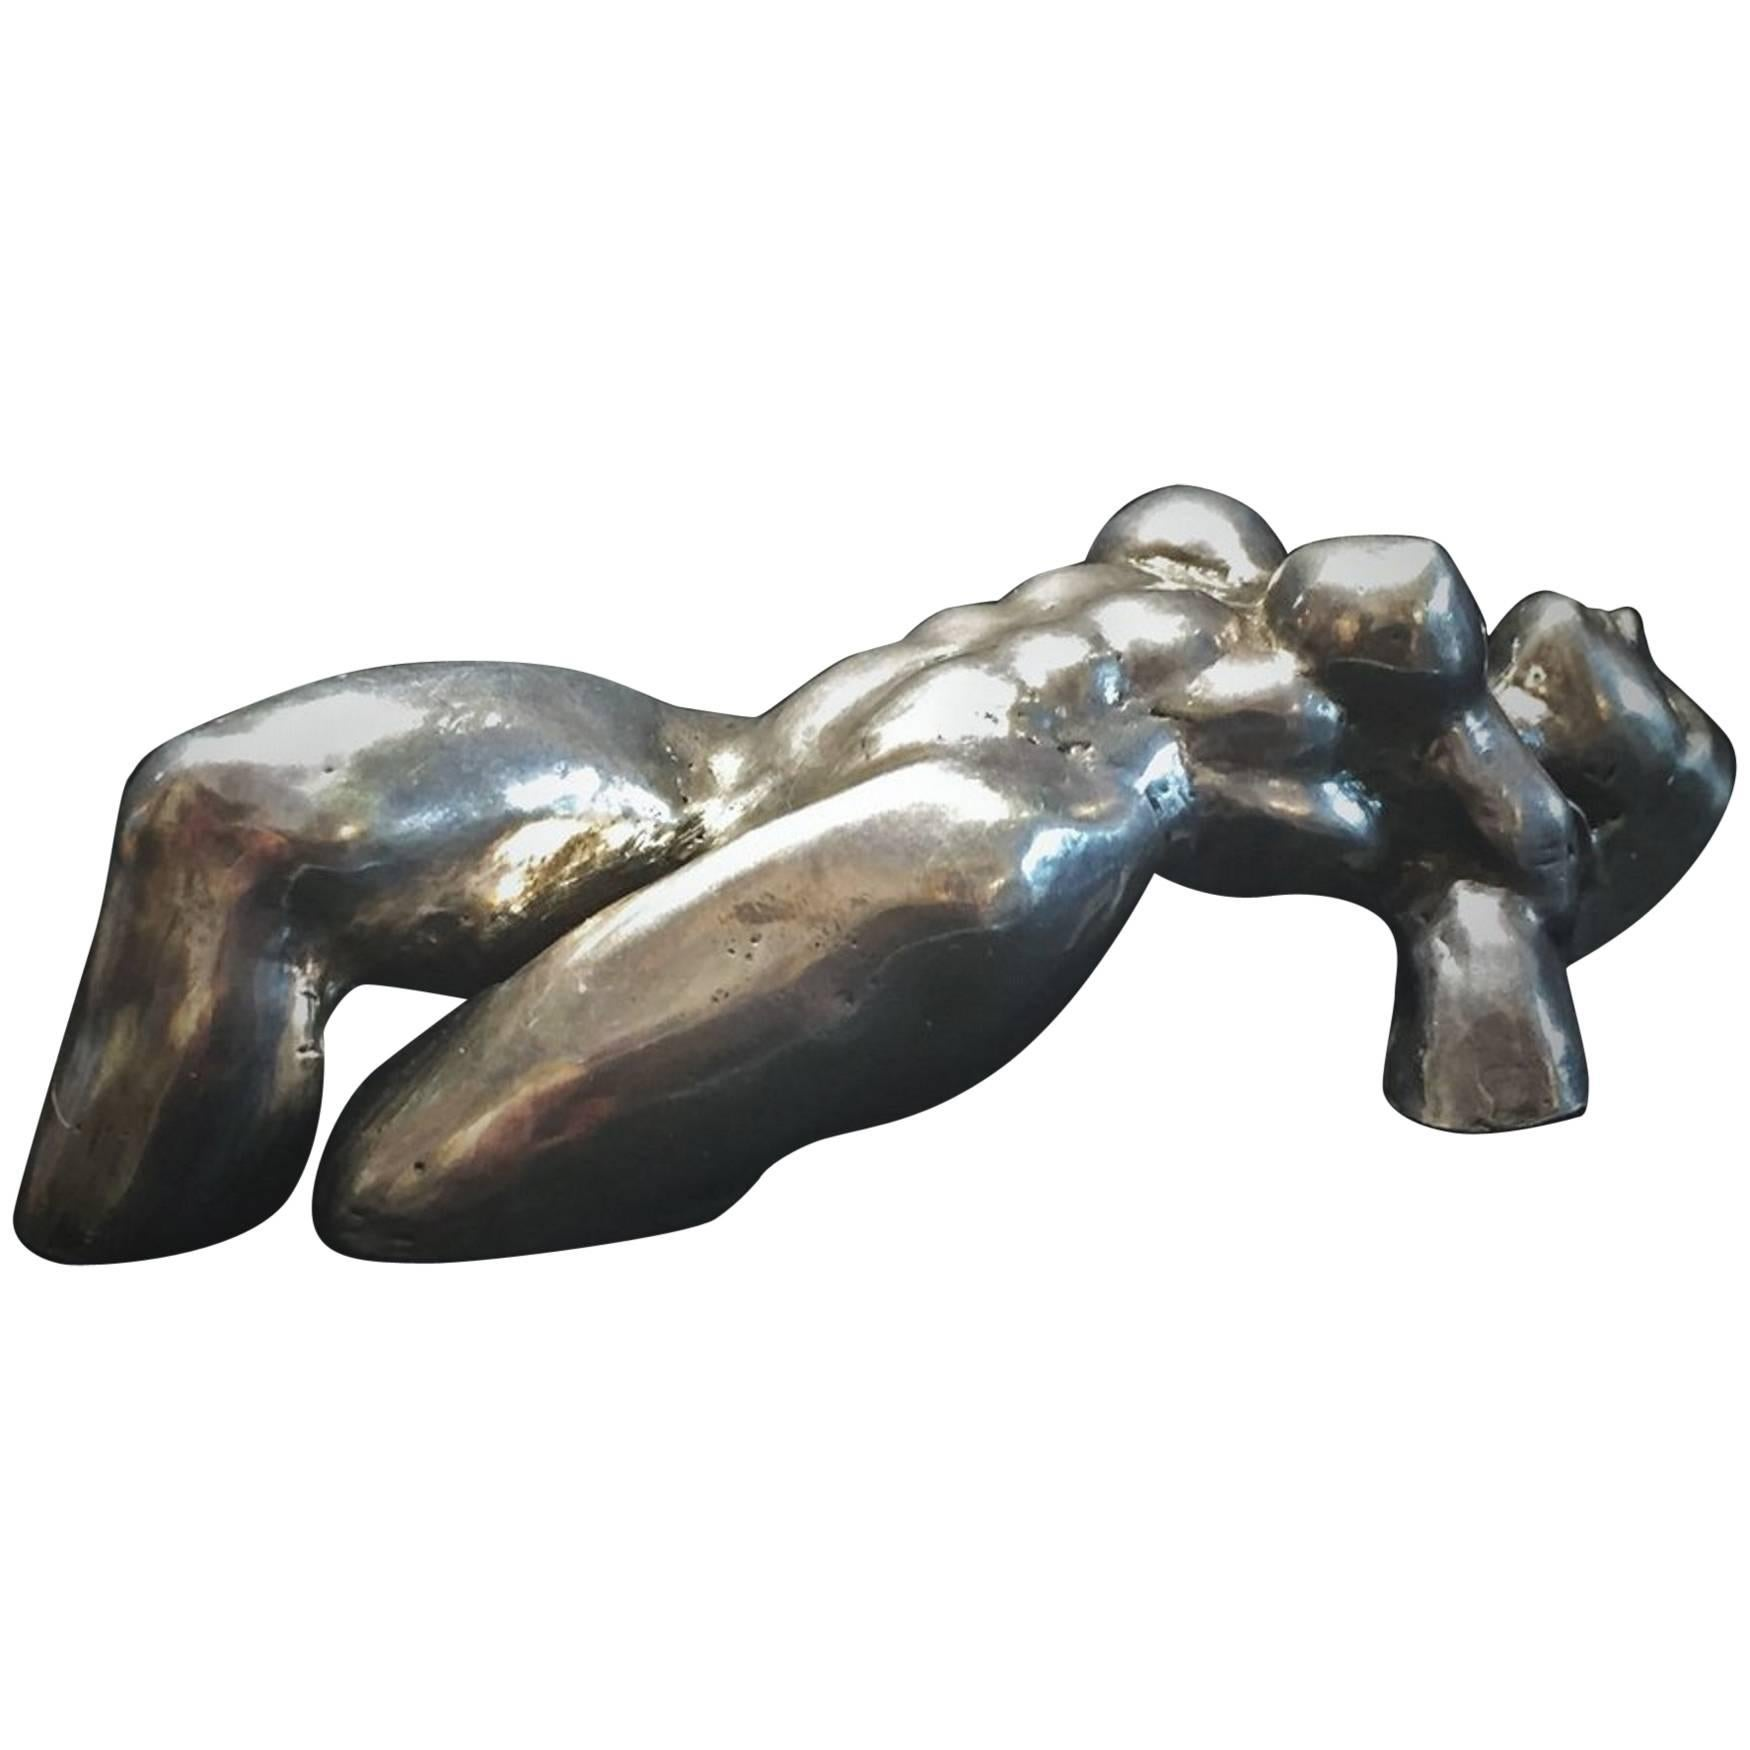 Val Stern, Nude, Solid Silver Sculptural Paperweight, 21st Century